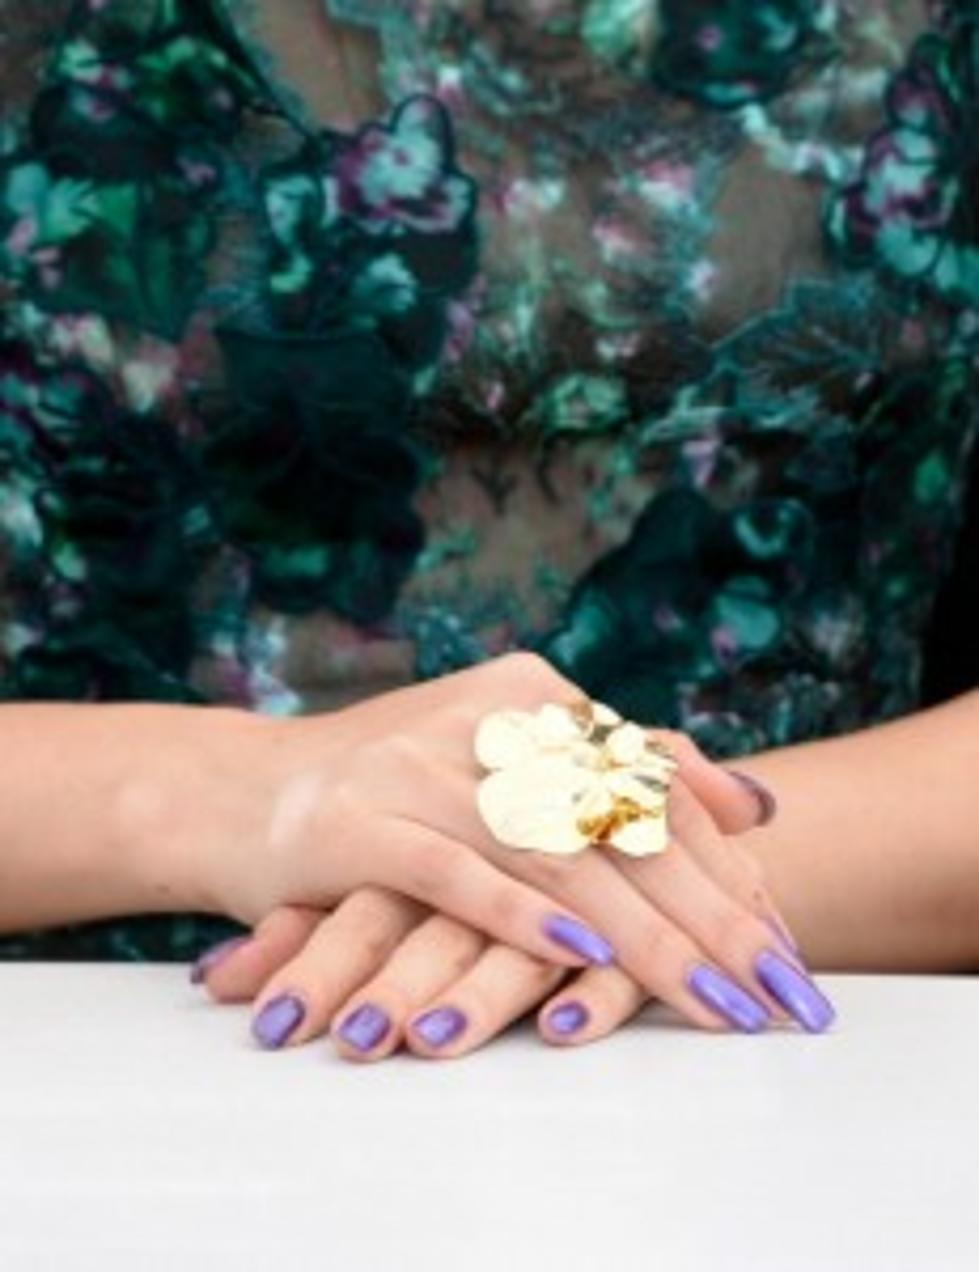 Purple Pinkie Campaign Launched In Memory Of Alexandra Kogut